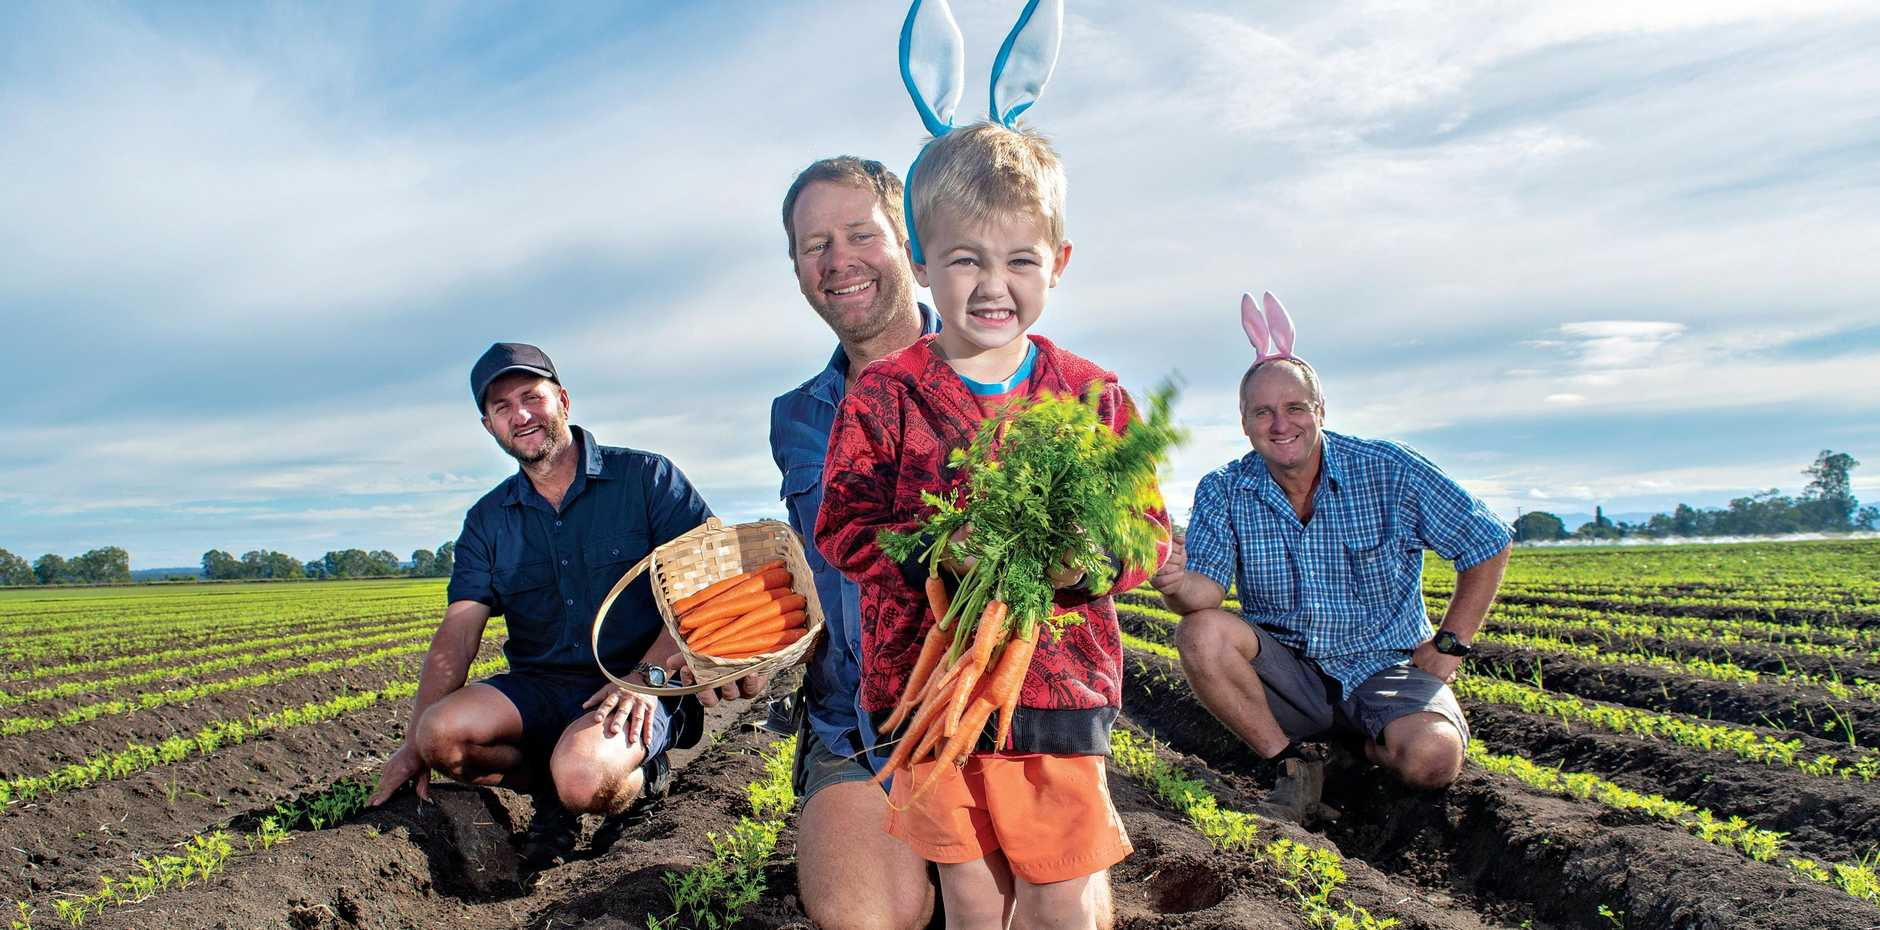 Stephen, Darren, Liam (front) and Mark Jendra, of Jendra Farms at Mount Tarampa, in their carrot field.